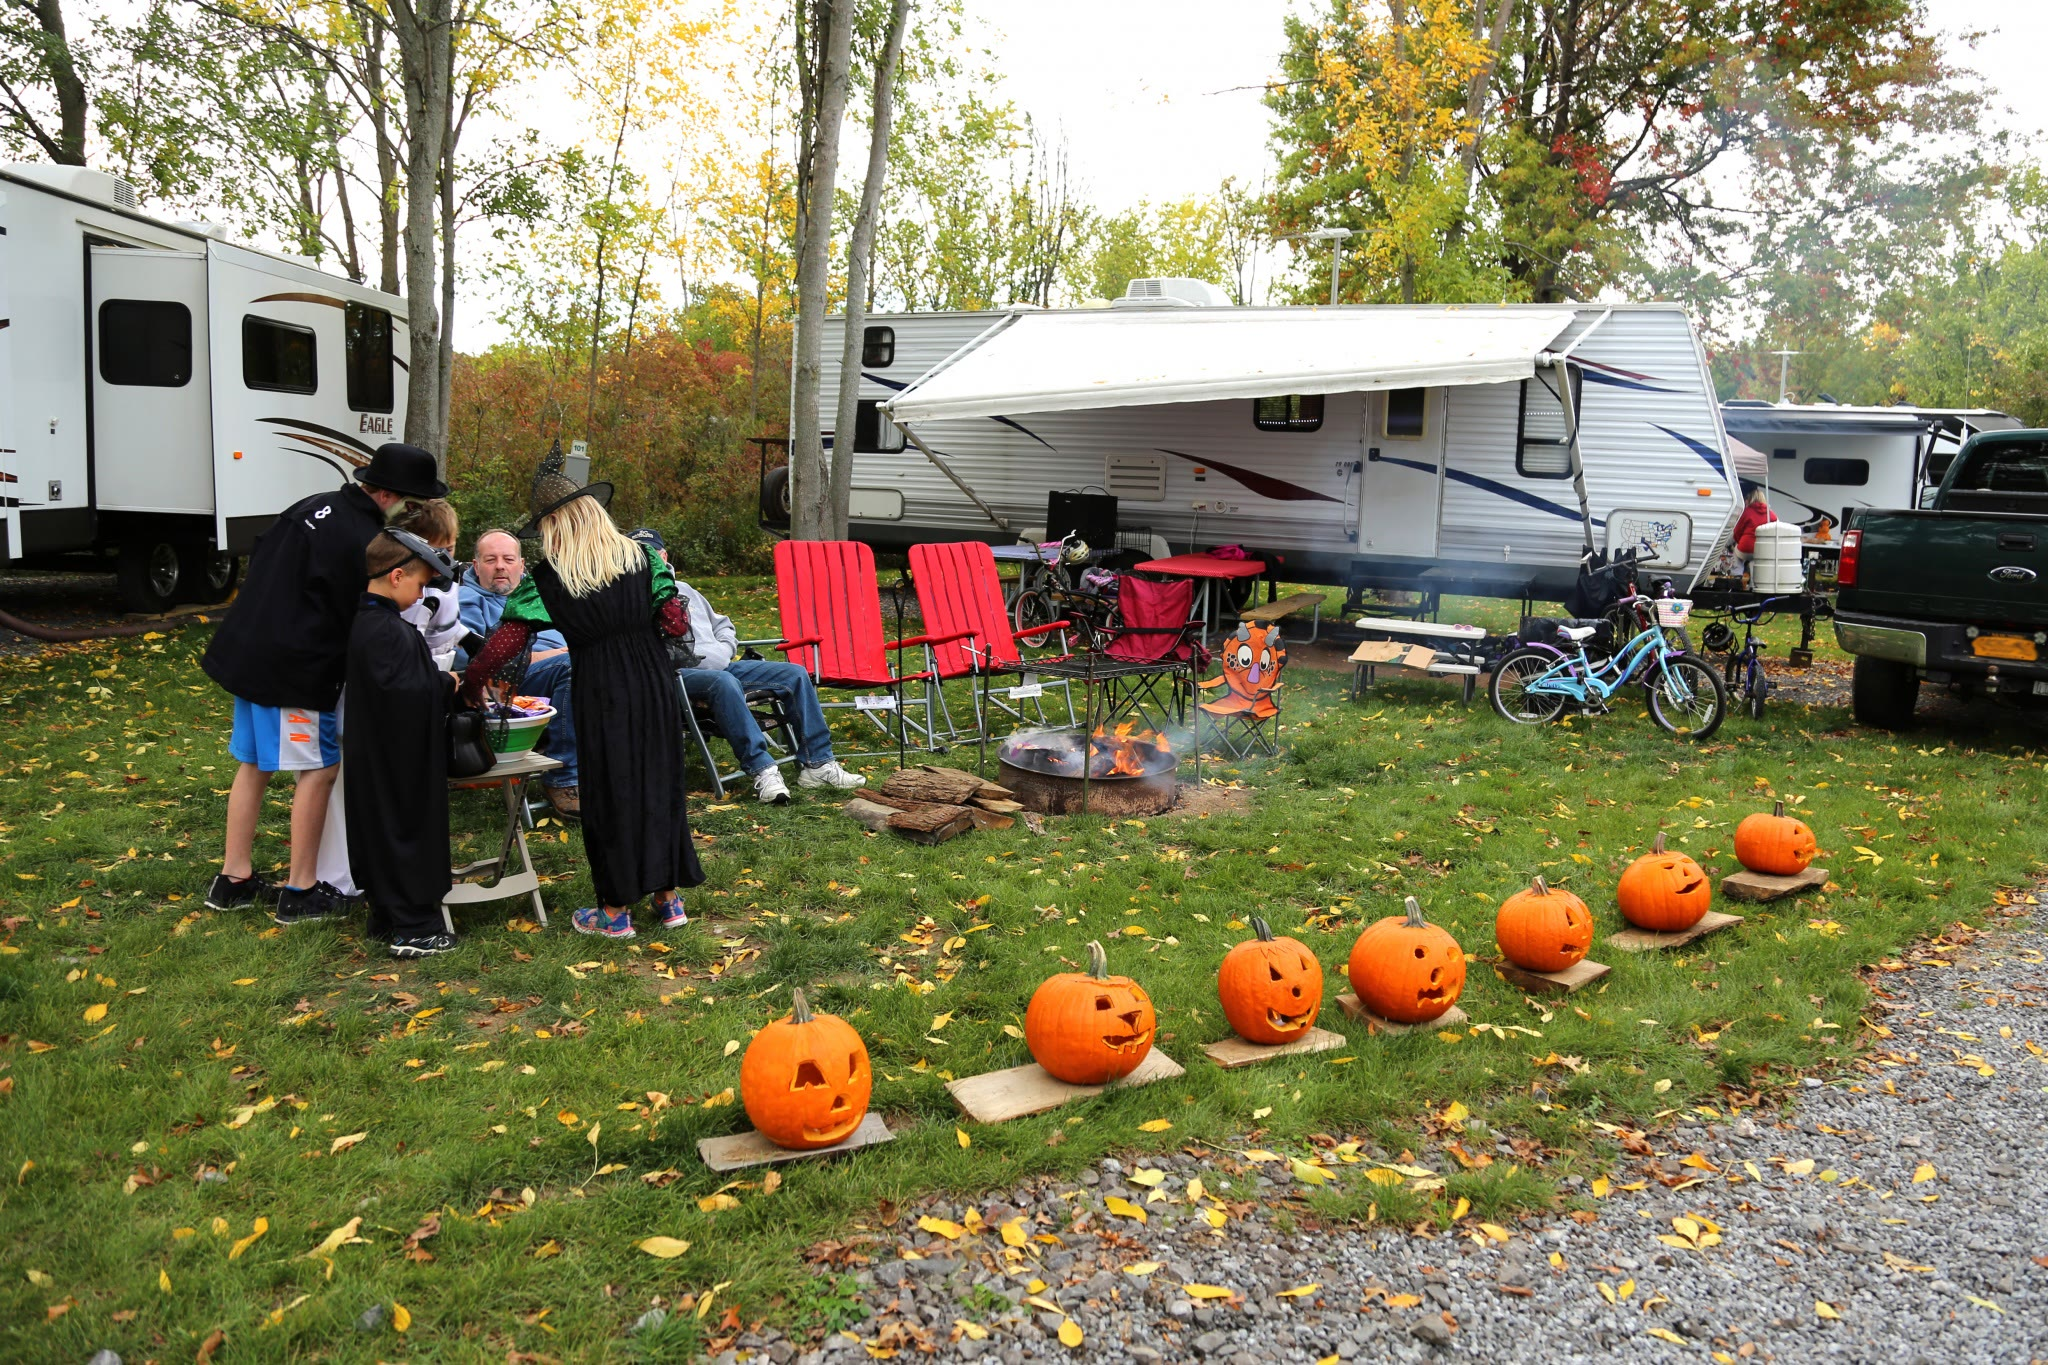 RV site decorate with pumpkins